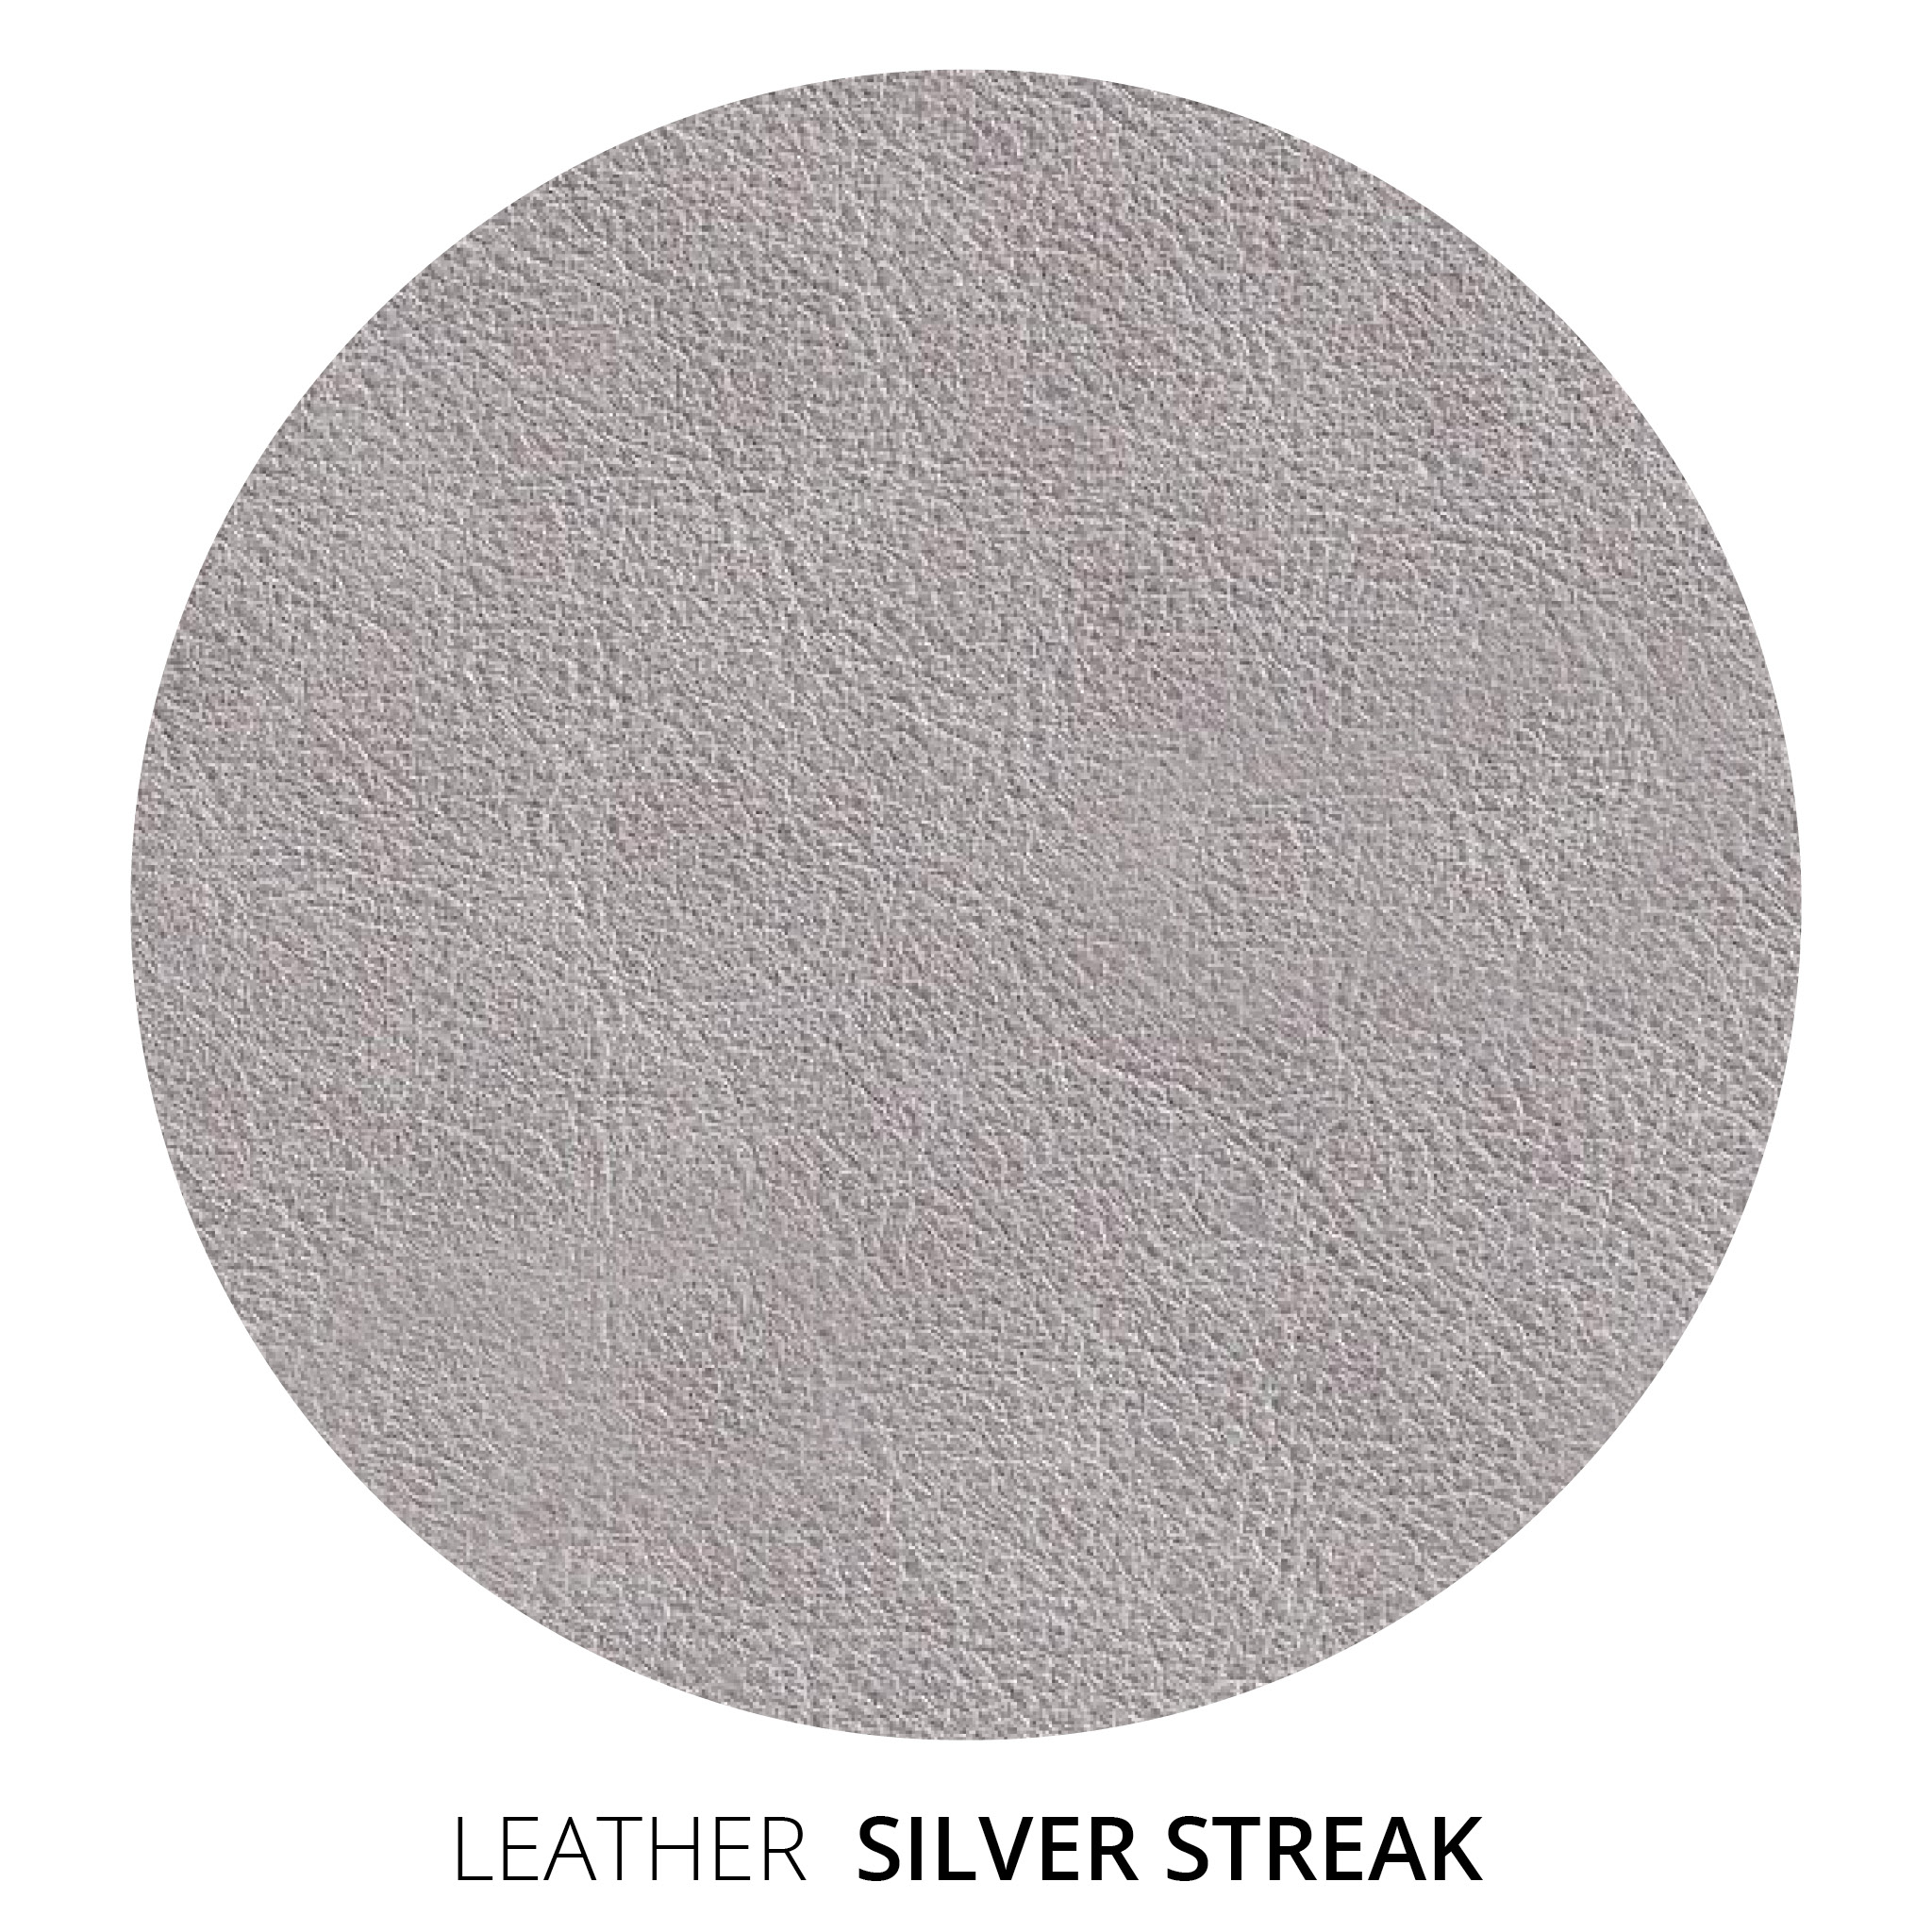 Silver Streak Leather Swatch